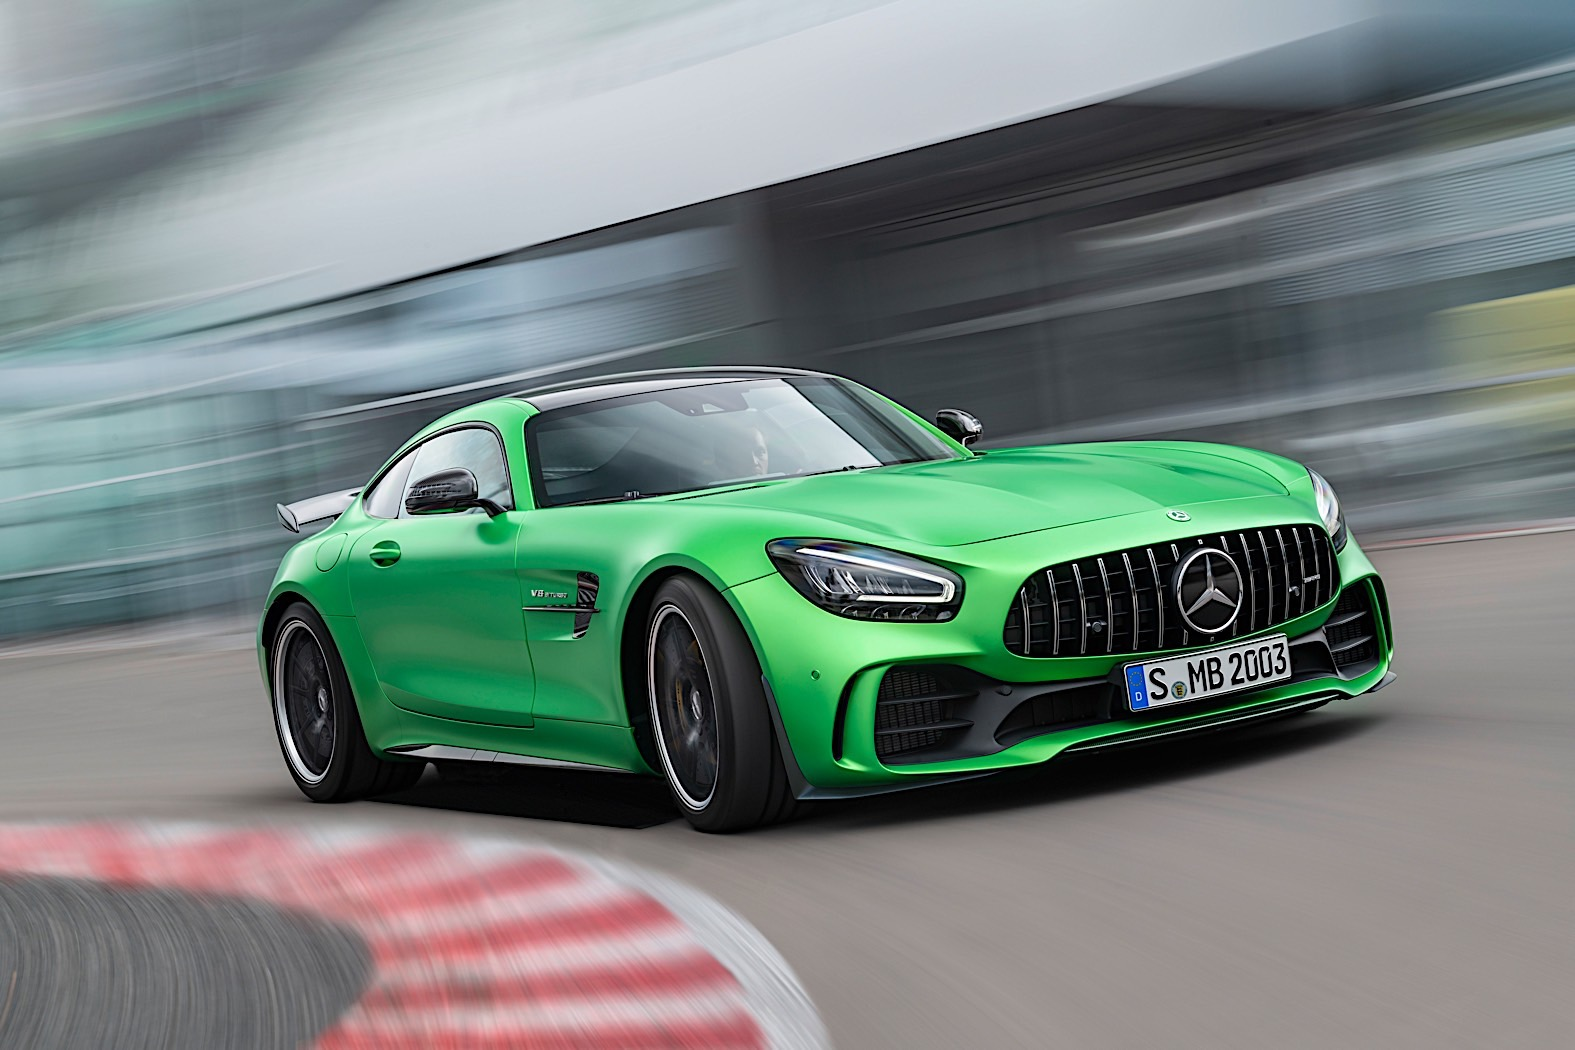 The 2020 Mercedes-AMG GT Gets More Tailpipes, Improved Dynamics